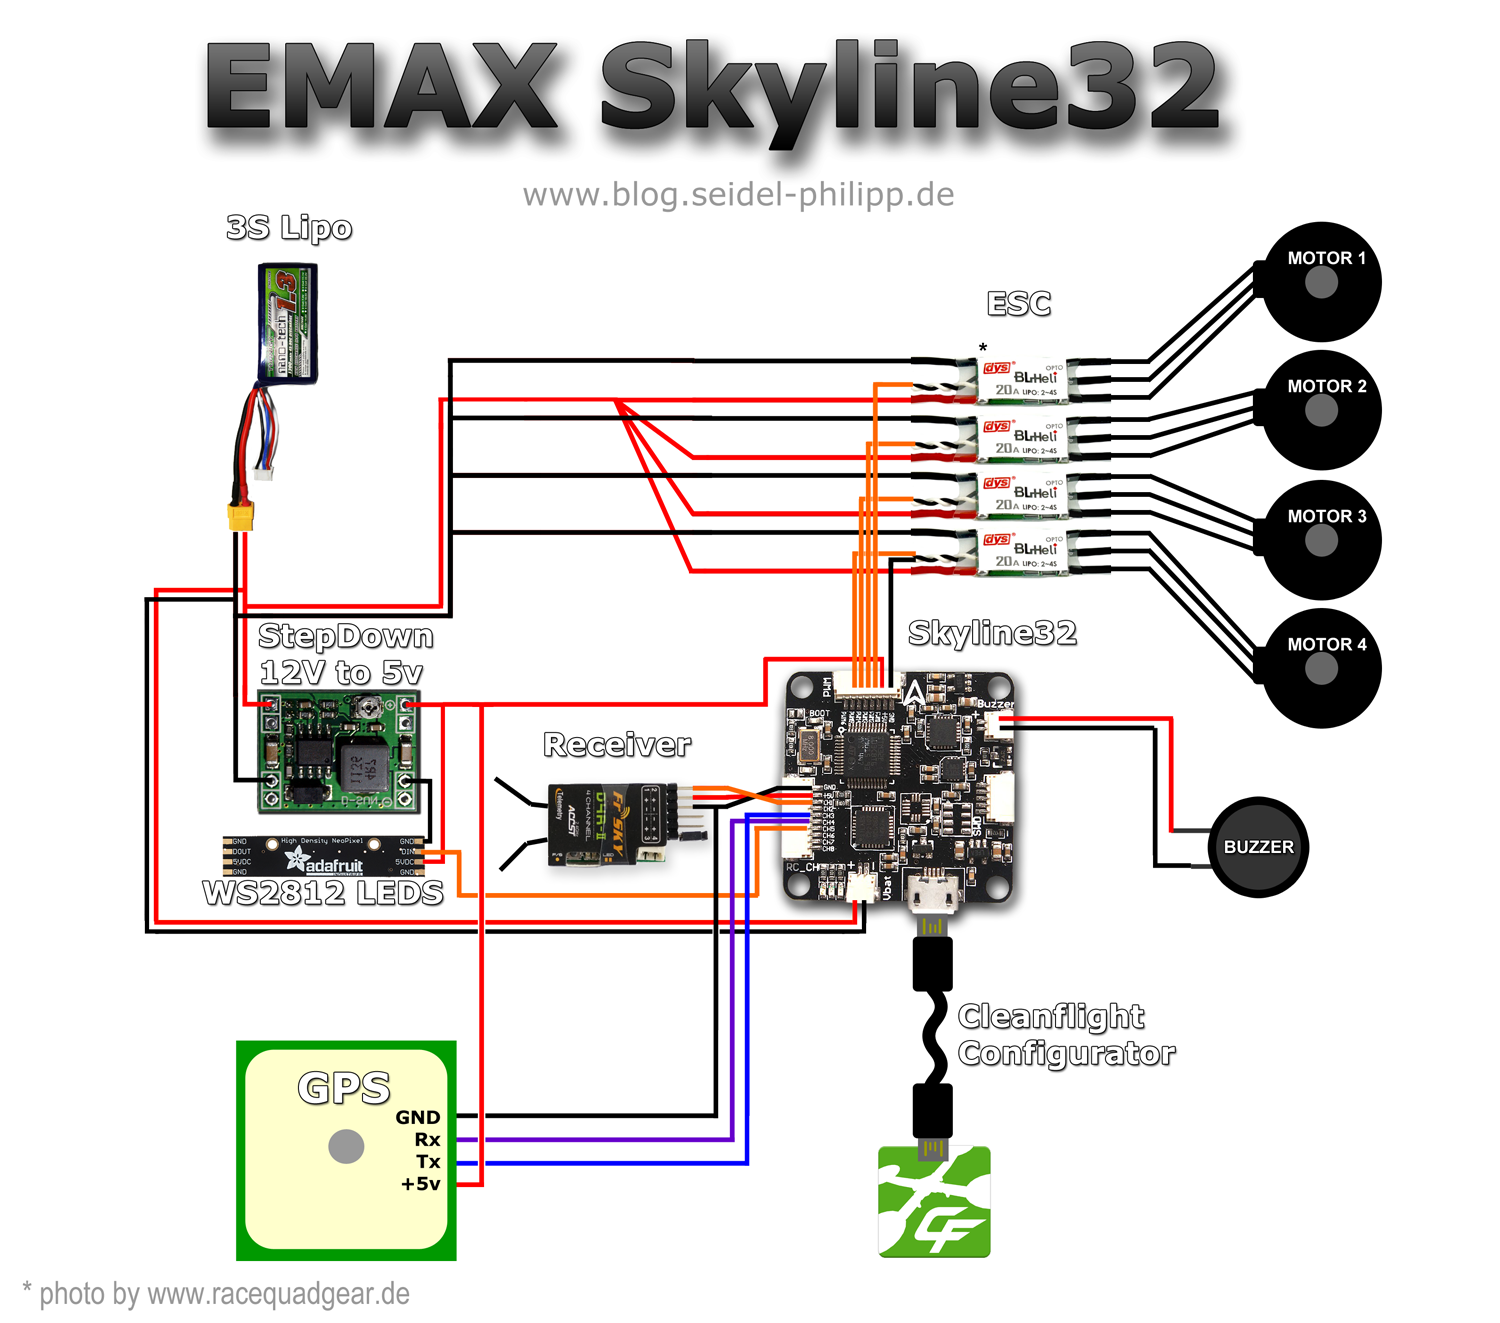 skyline32 Pins_hardware_setup_pins_layout cc3d flight controller wiring diagram hexacopter flight controller wiring diagram for a ccd camera at gsmportal.co